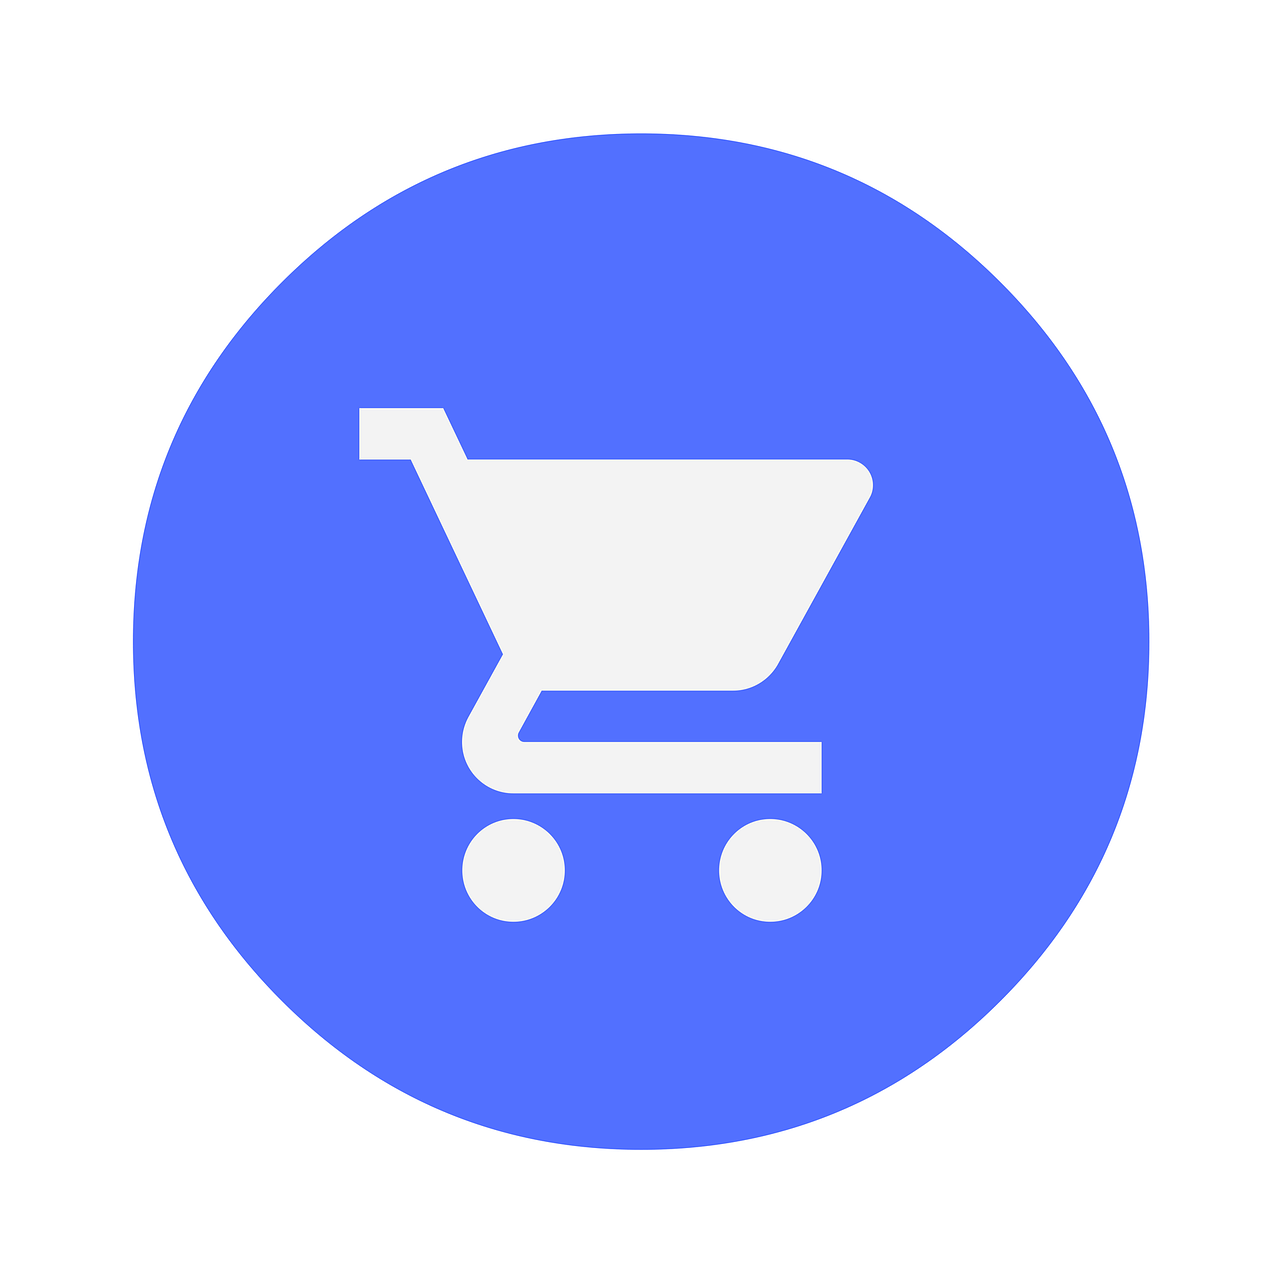 Add to cart images free Shopping Cart Pictures Download Free Images on Unsplash